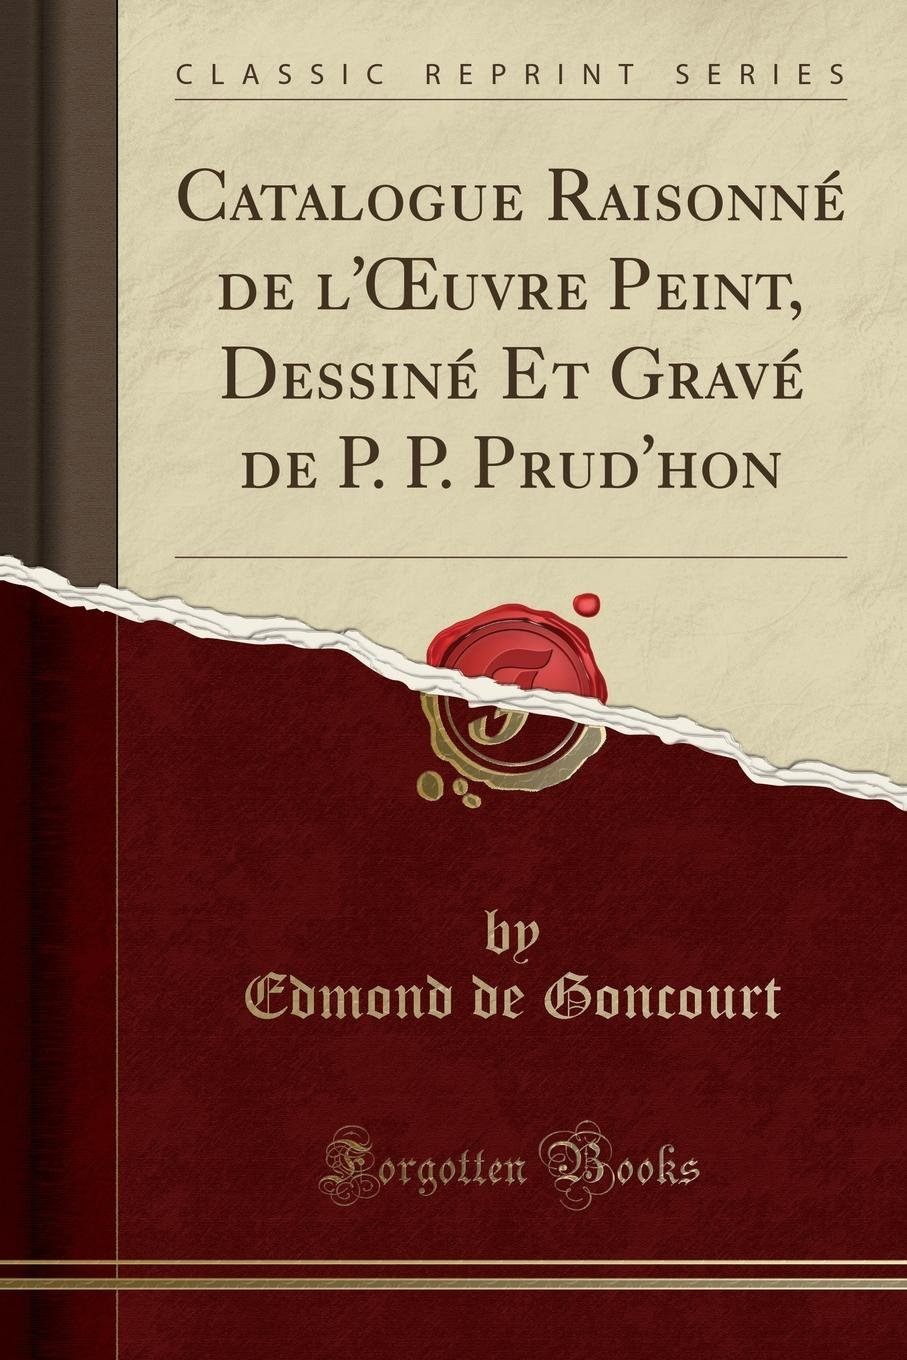 catalogue raisonn de loeuvre peint dessin et grav de pp prudhon french edition